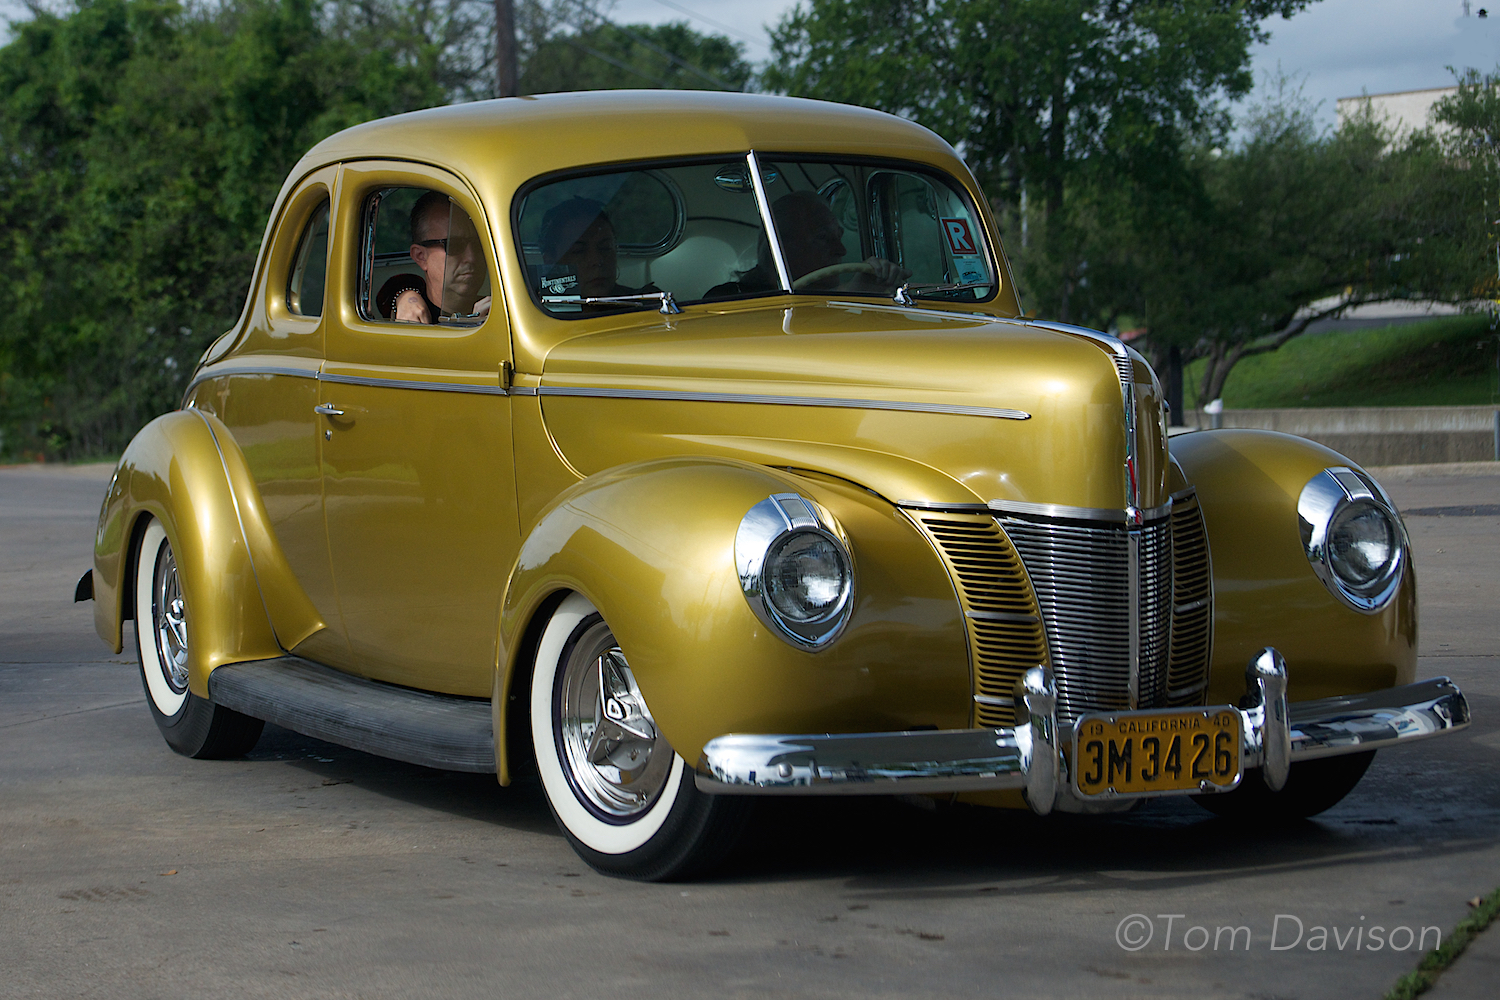 This is Lee's 1940 Ford. It has been on the cover of Rodder's Journal.